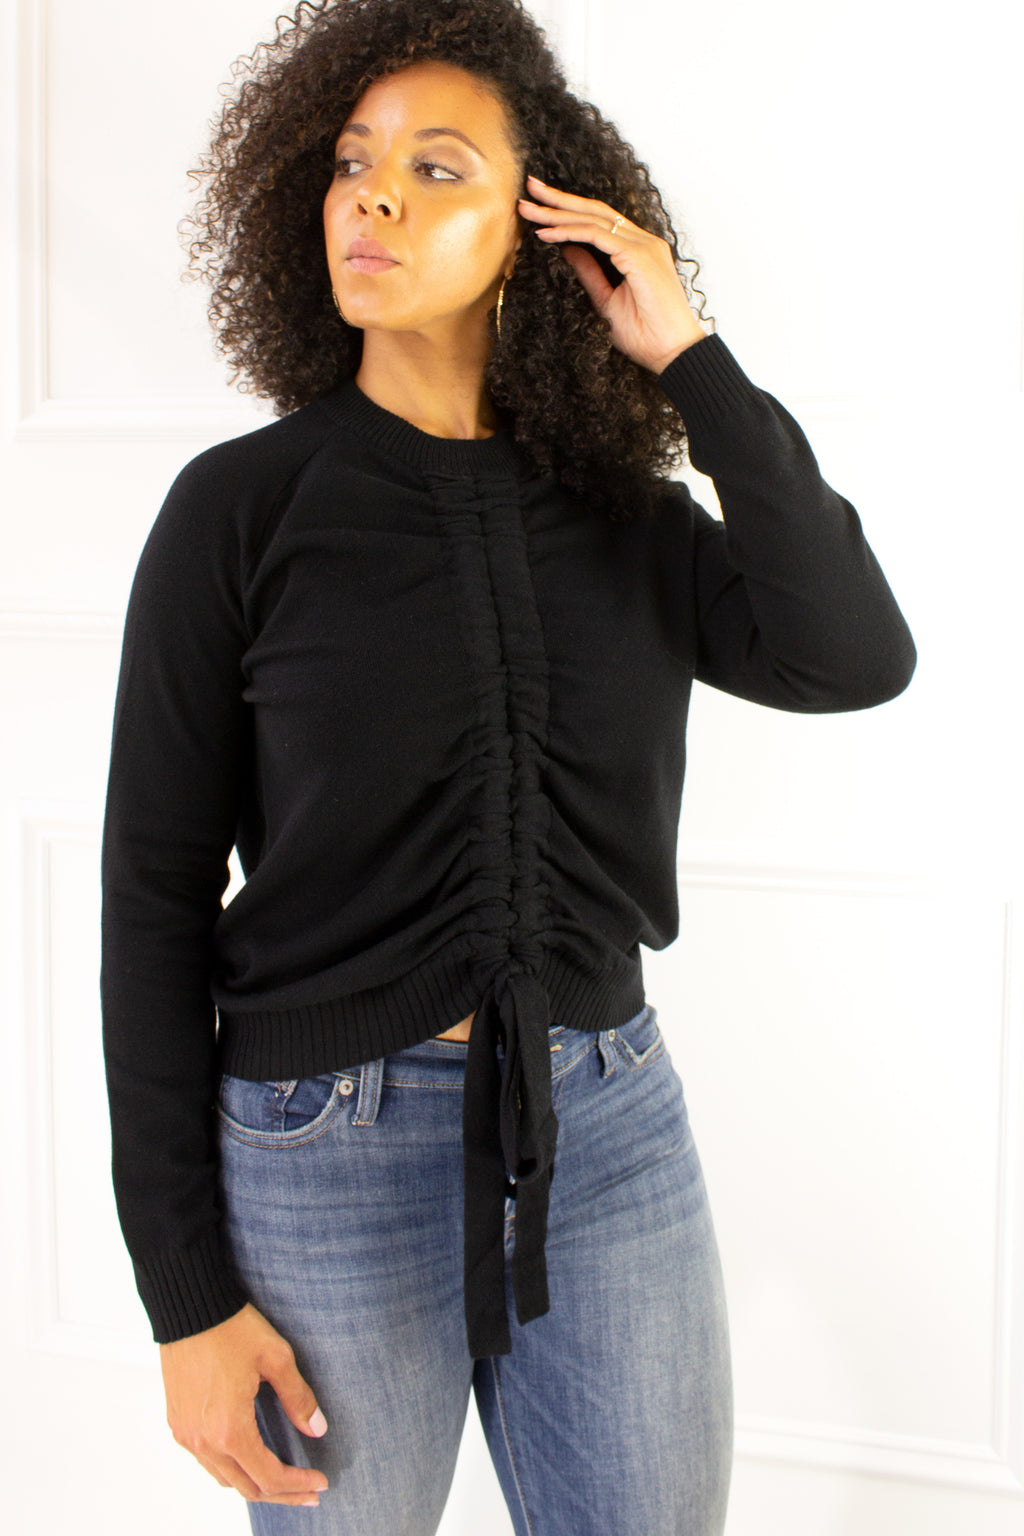 Midtown Scrunch Sweater - black